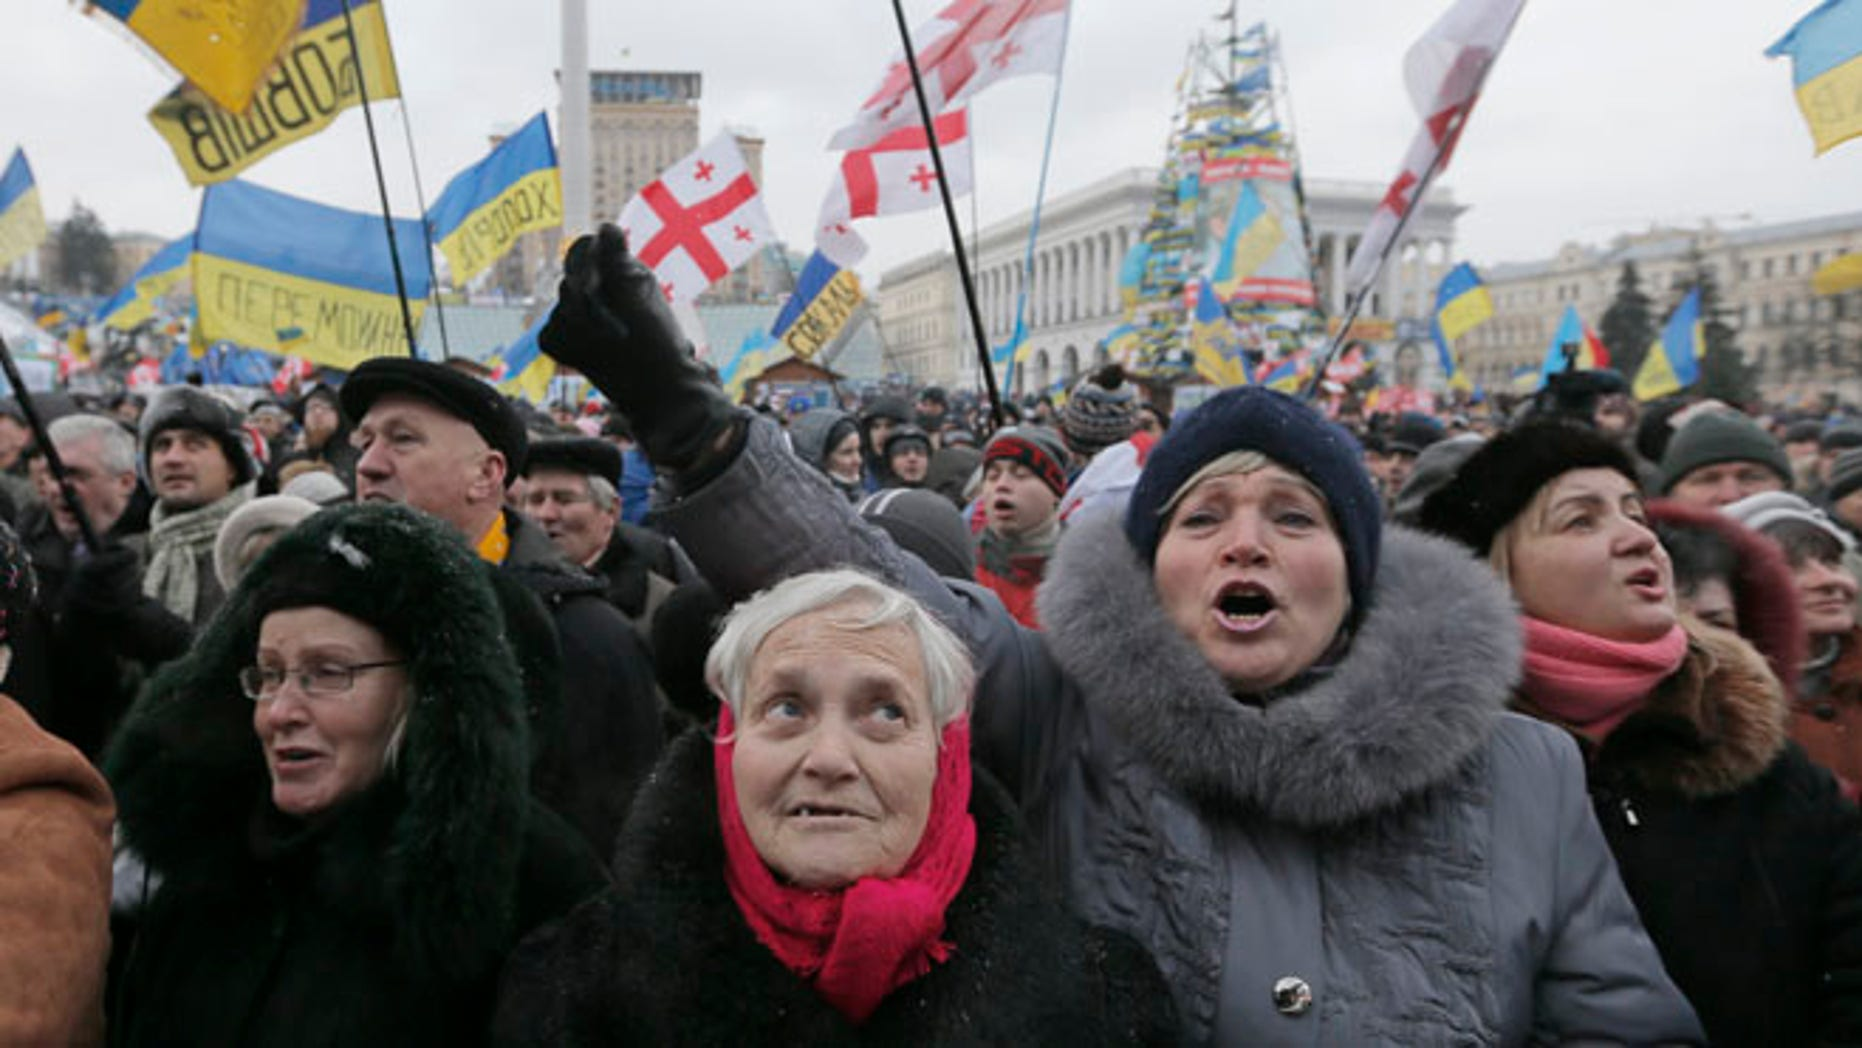 Pro-European Union activists shout slogans during a rally in the Independence Square in Kiev, Ukraine, Saturday, Dec. 7, 2013. As thousands of anti-government protesters kept their vigil in Ukraine's capital Saturday, officials sought to reduce their anger with assurances that Russian and Ukrainian presidents didnt discuss Ukraine joining a Russian-led customs union at a meeting this week. (AP Photo/Efrem Lukatsky)